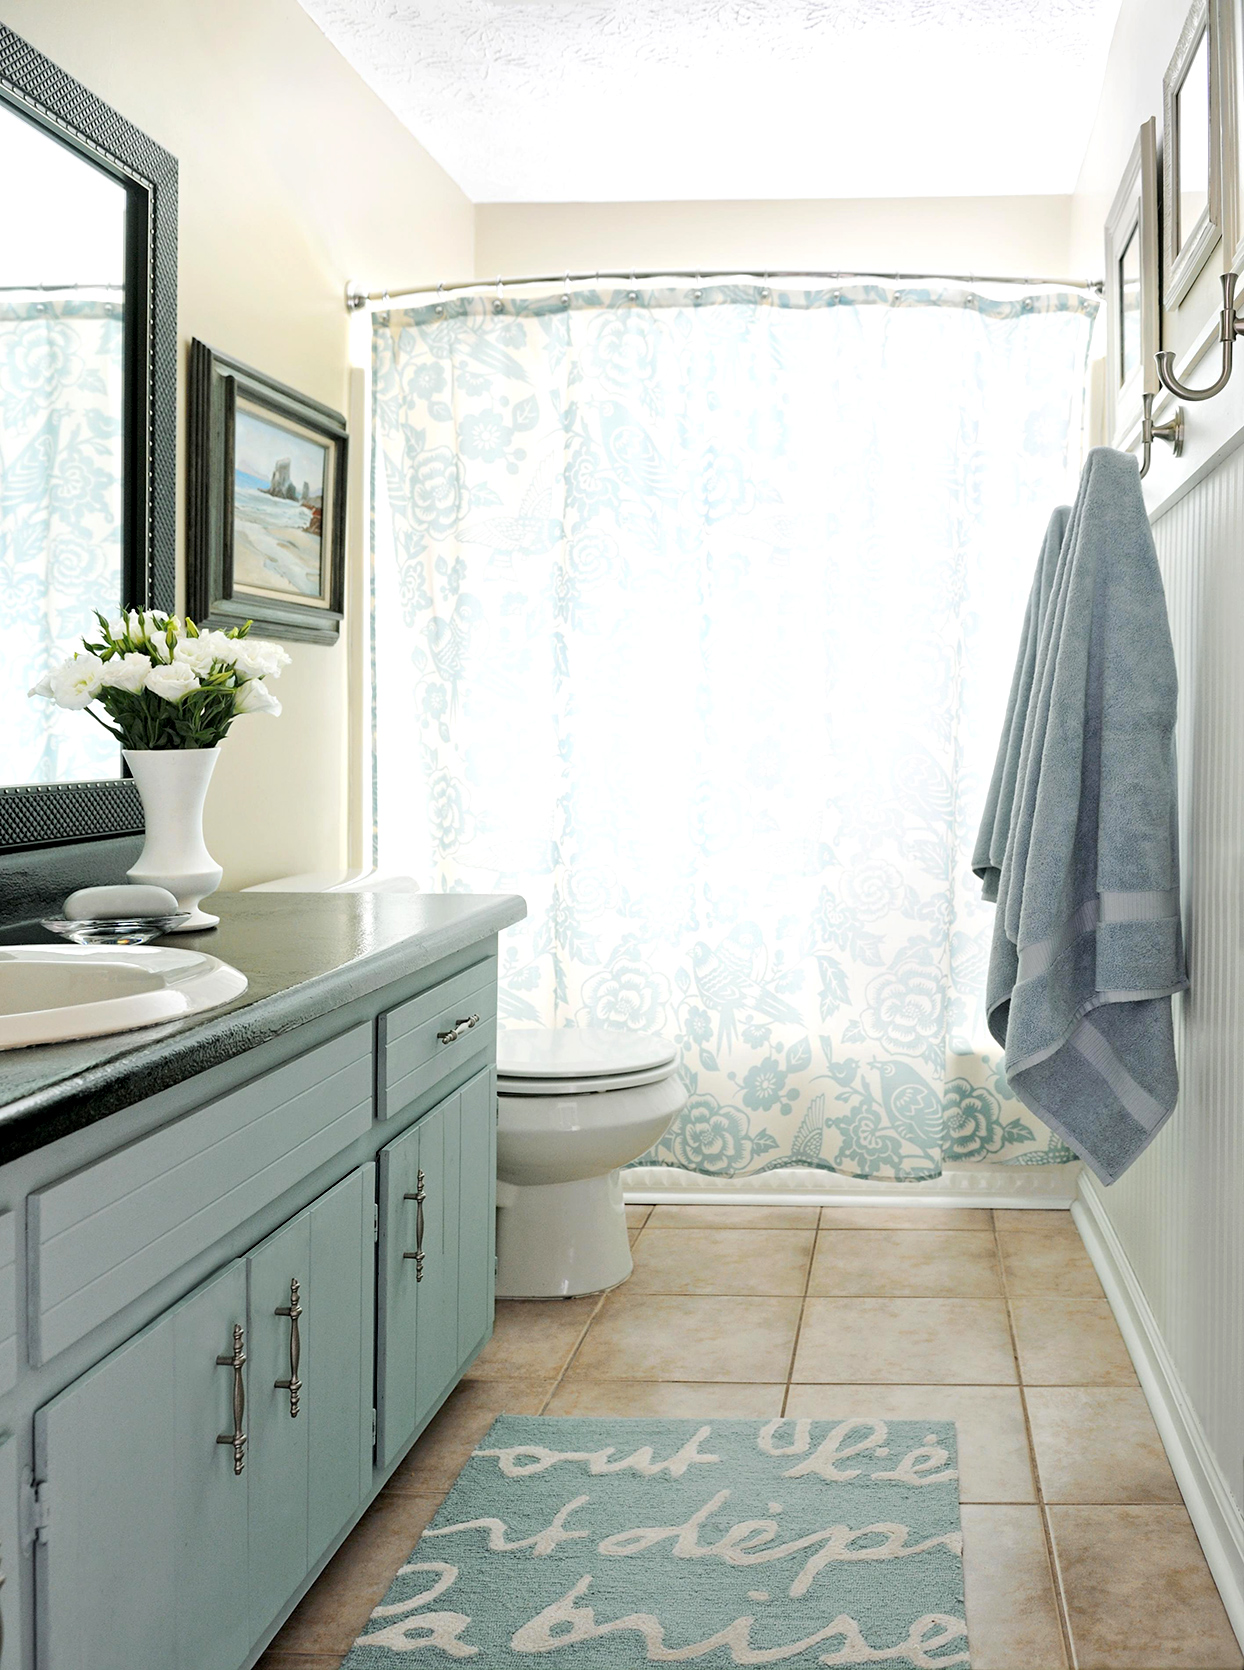 traditional style bathroom with porcelain tile floor